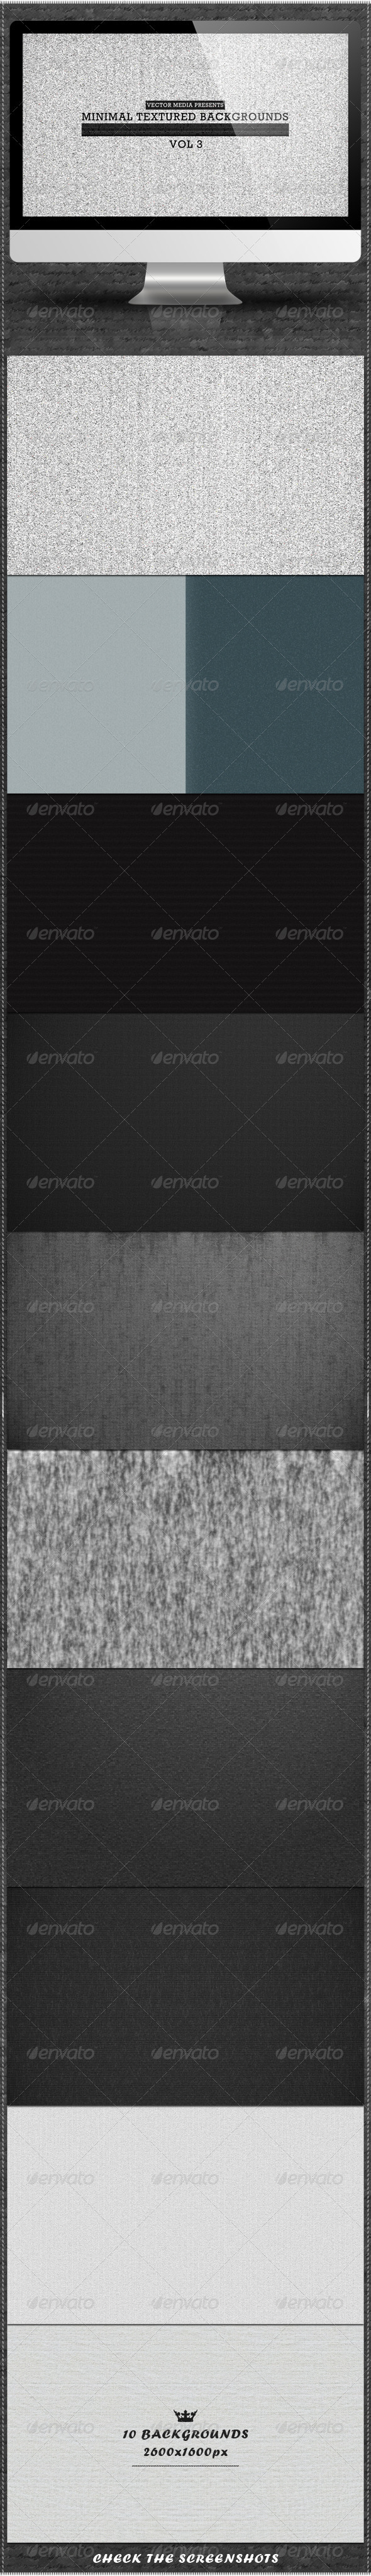 Minimal Textured Backgrounds - Vol 3 - Backgrounds Graphics